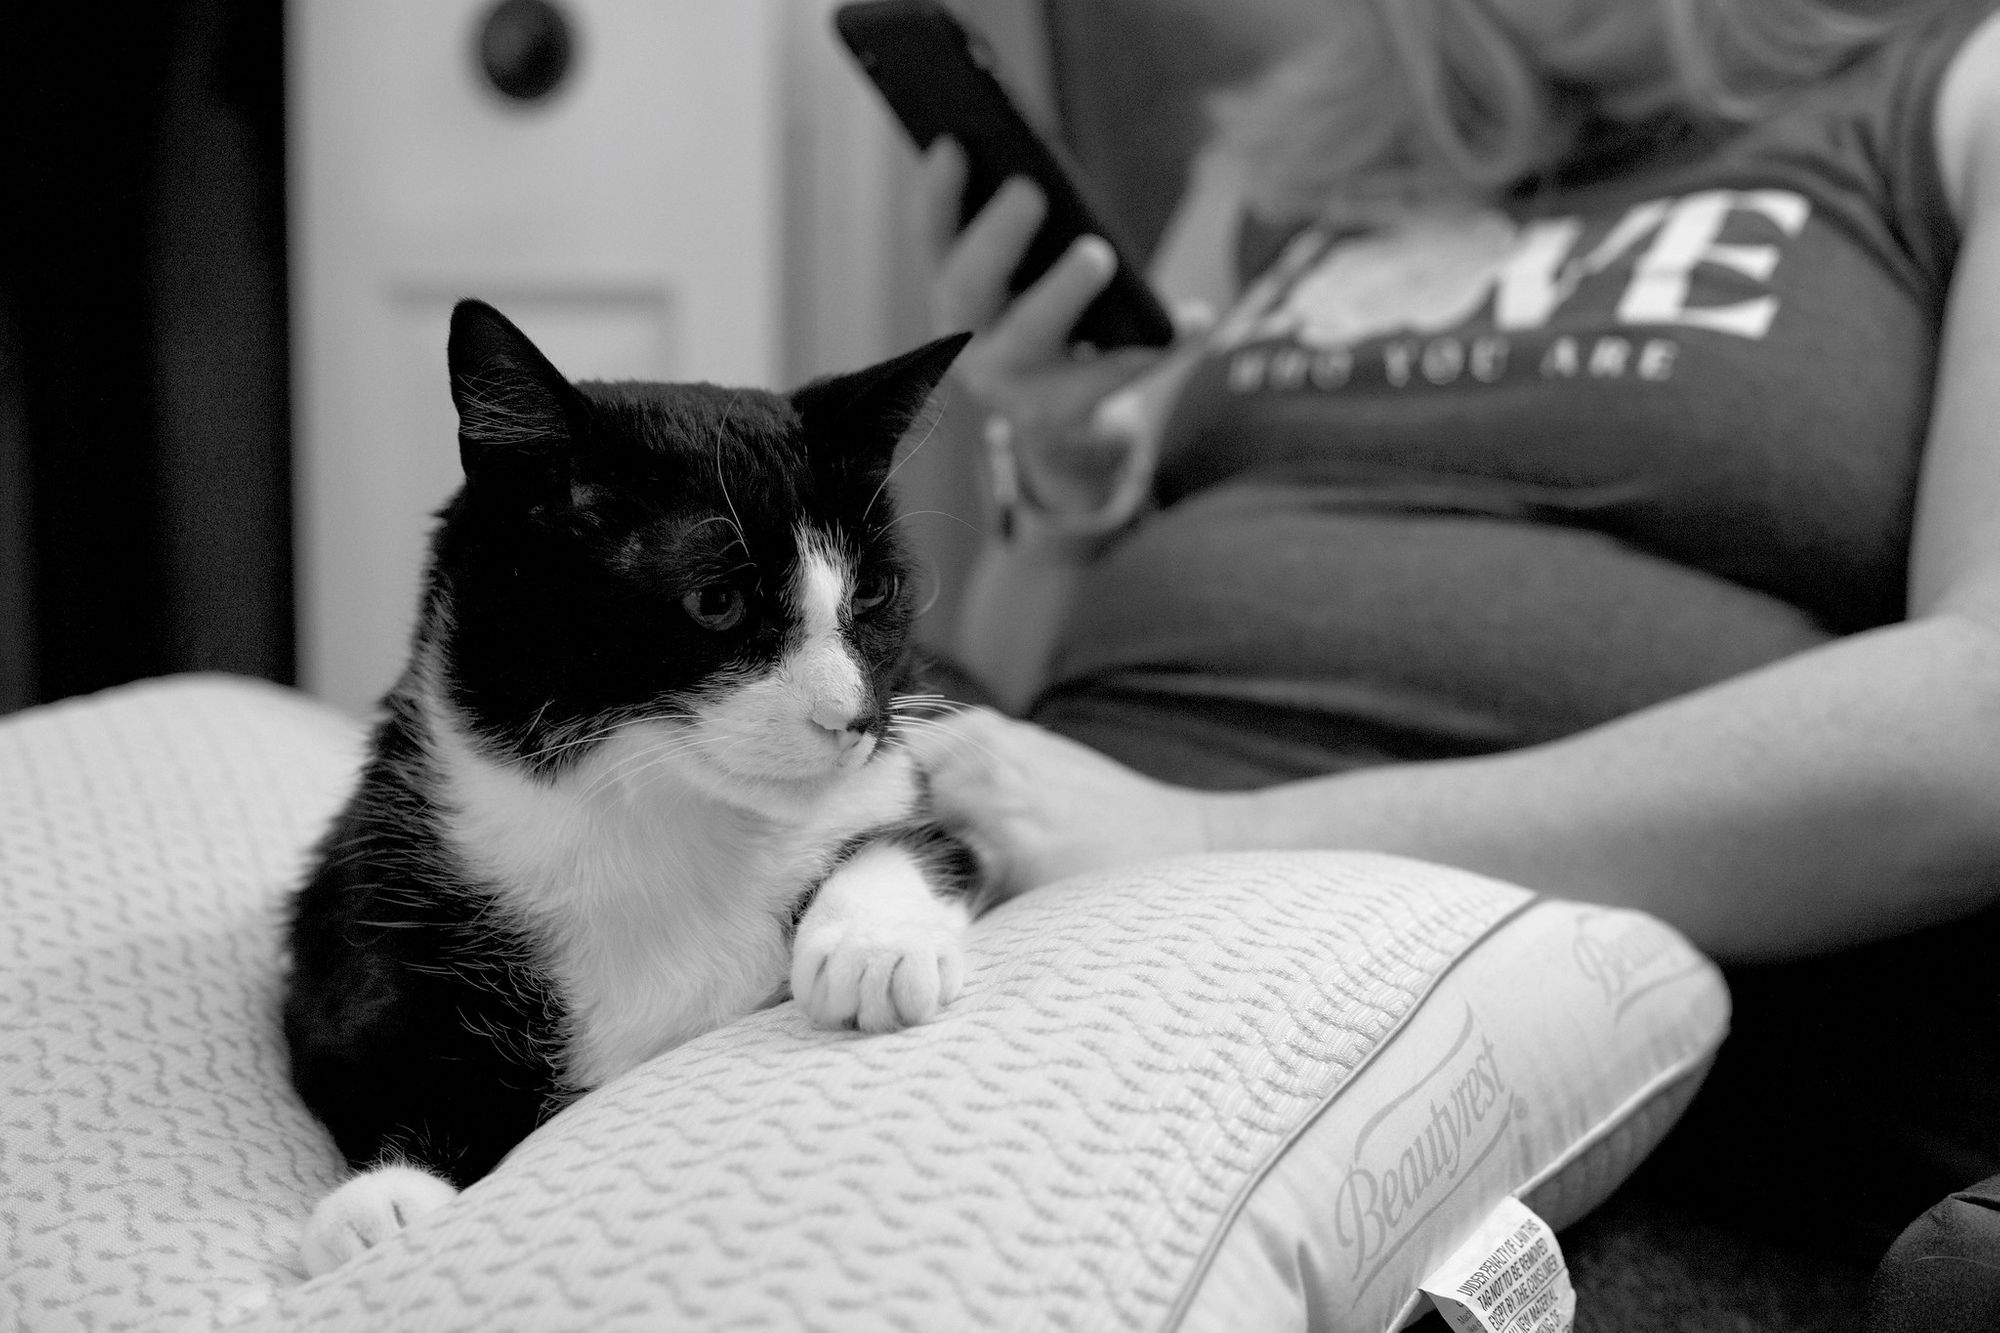 Tuxedo cat laying on a pillow on a woman's lap